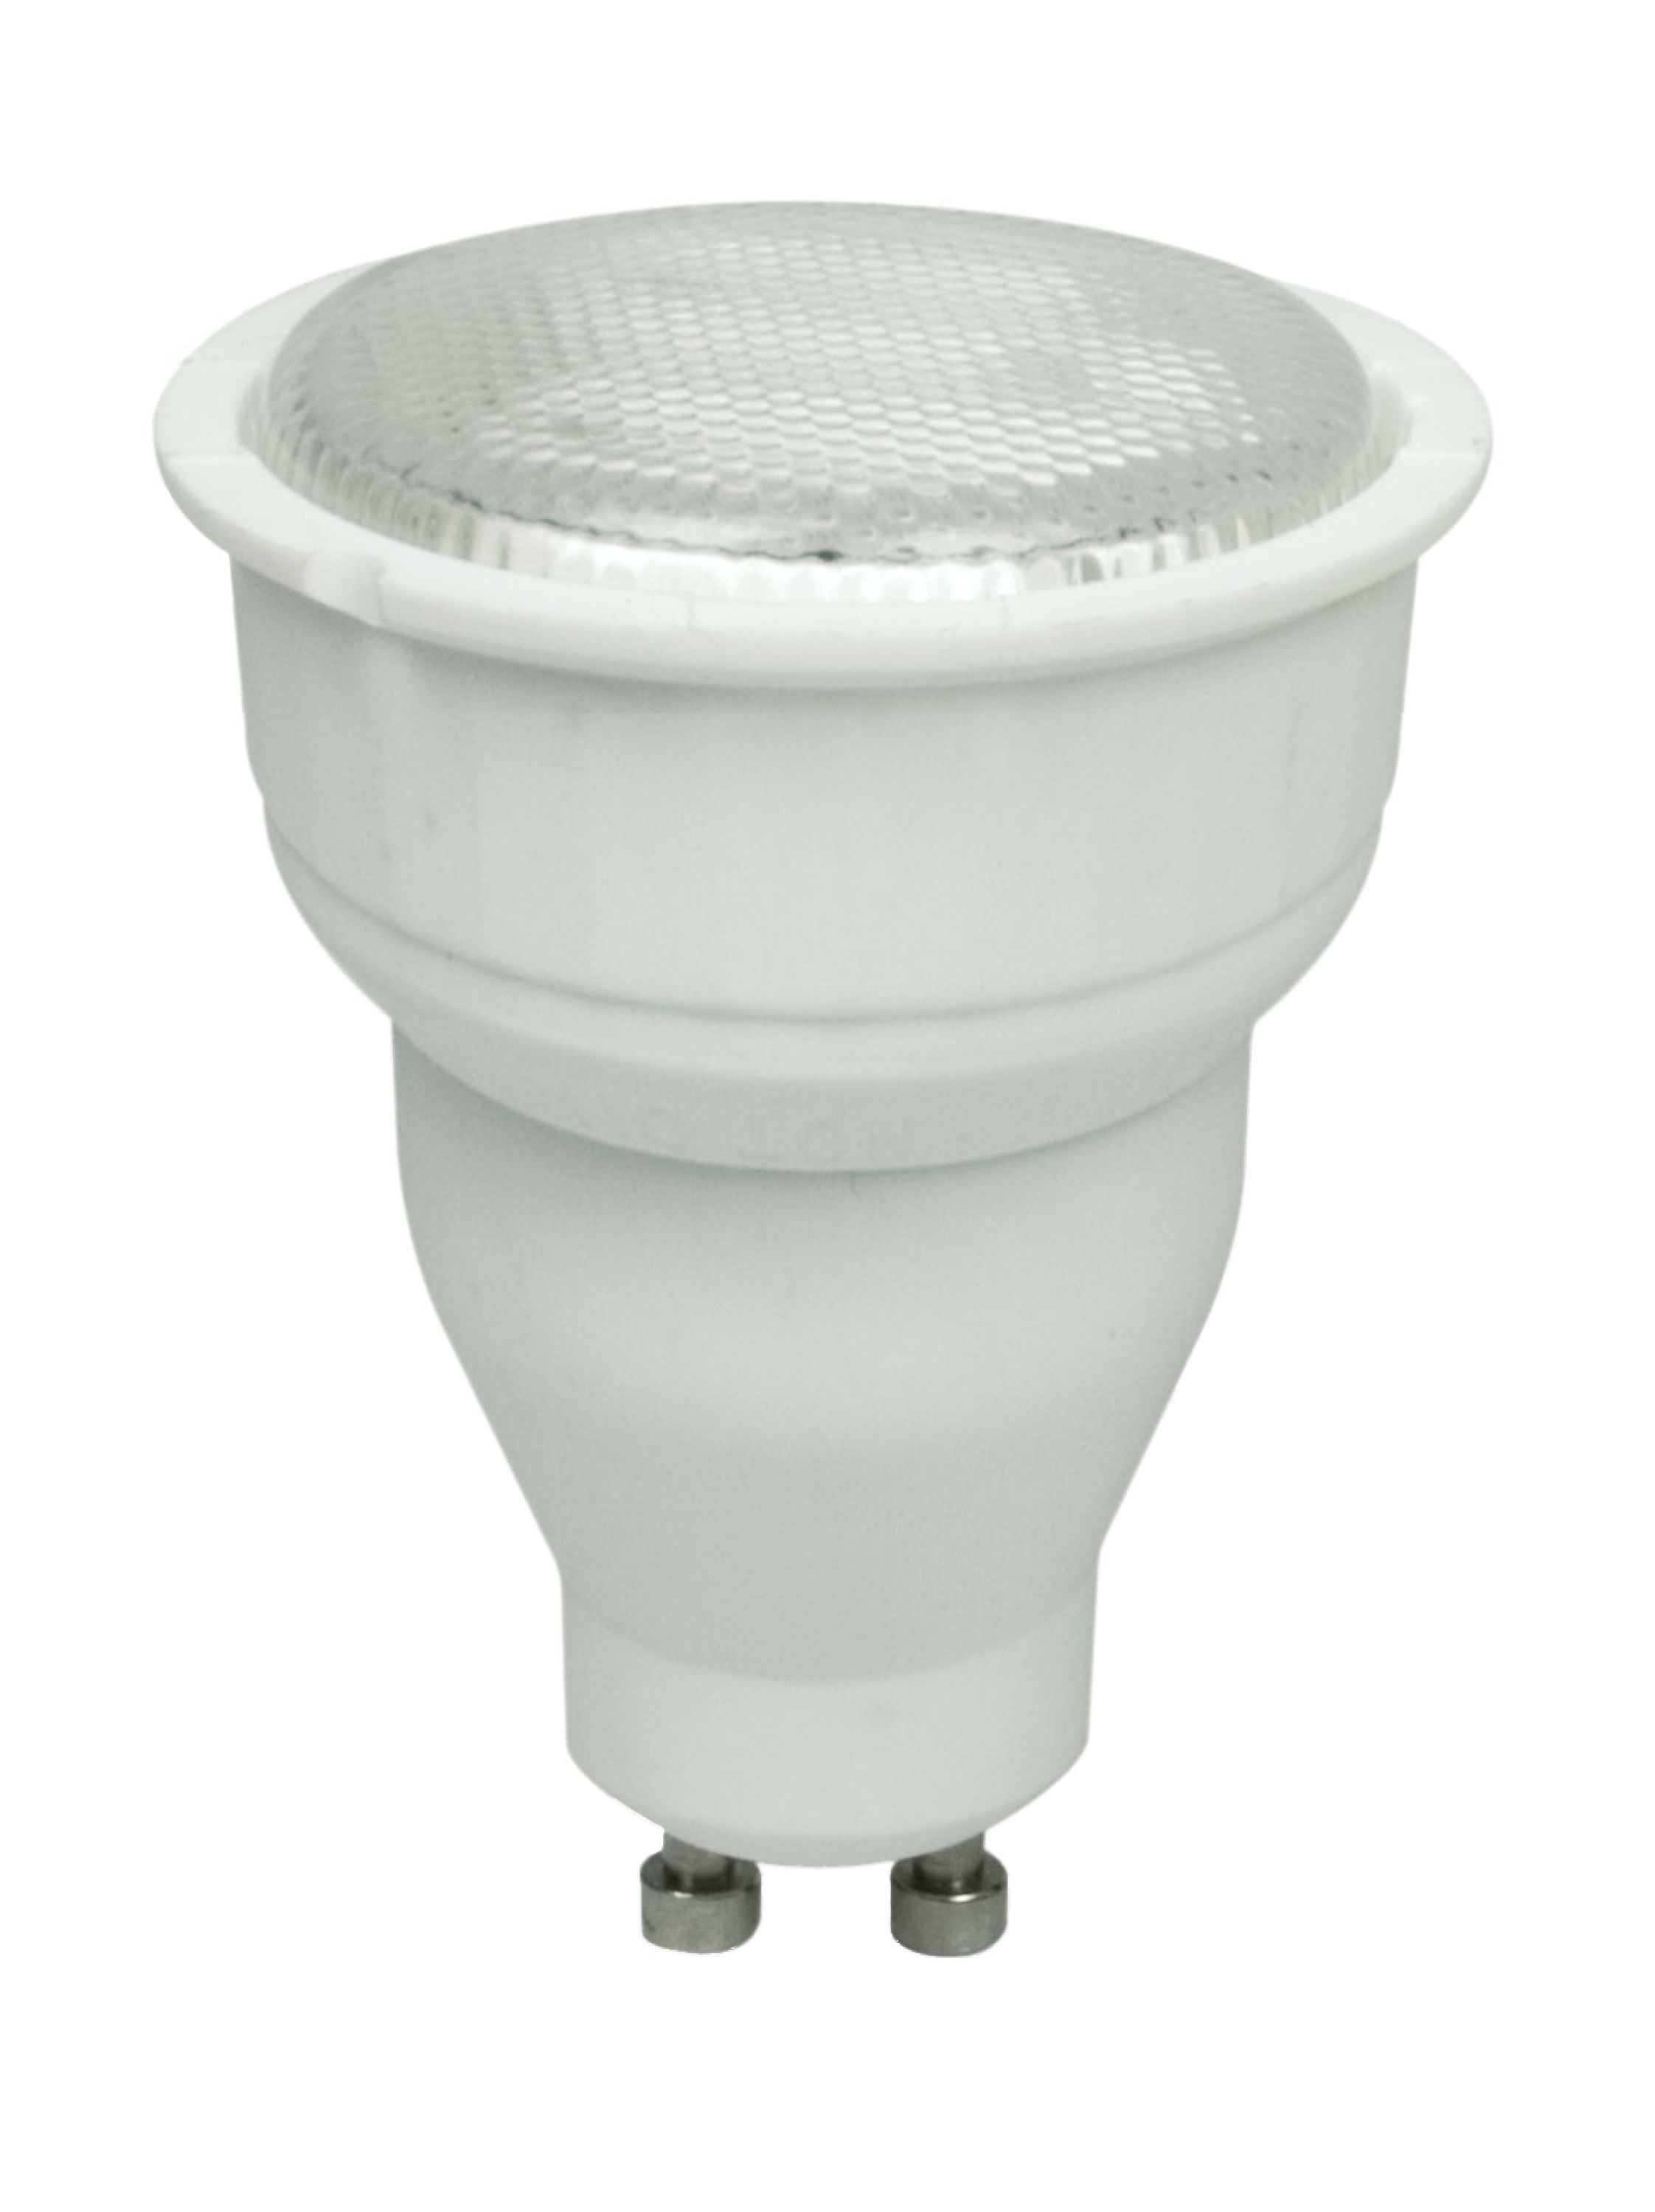 Wall Mounted Fisherman S Lamp : Fisherman Wall Light (satin silver, seeded glass) 5331-1SS - ?46.08